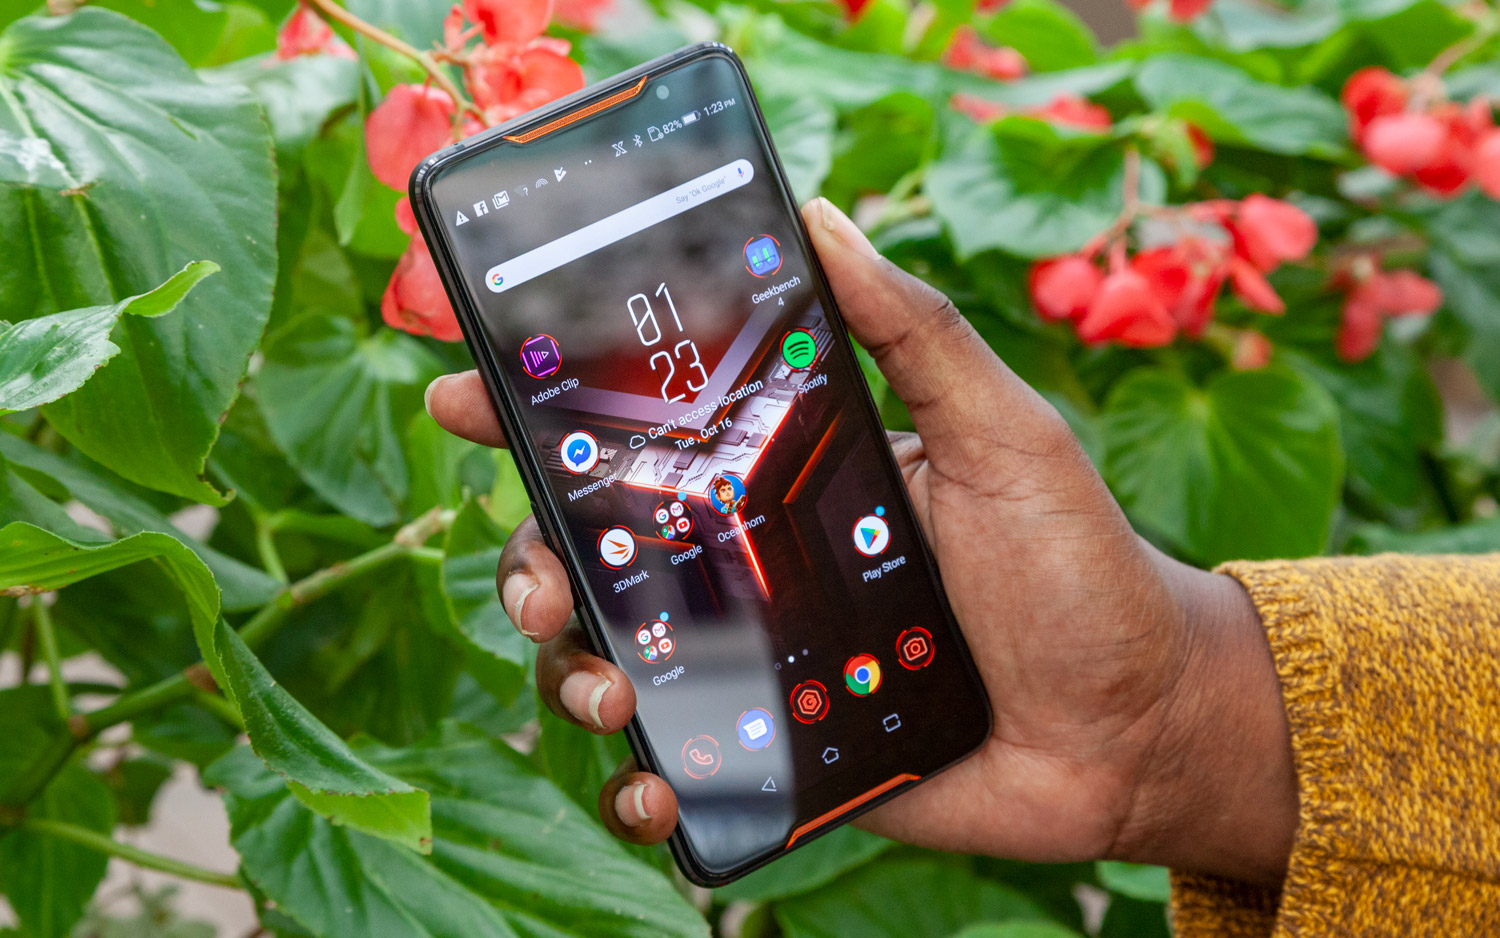 Asus ROG Phone - Full Review and Benchmarks | Tom's Guide